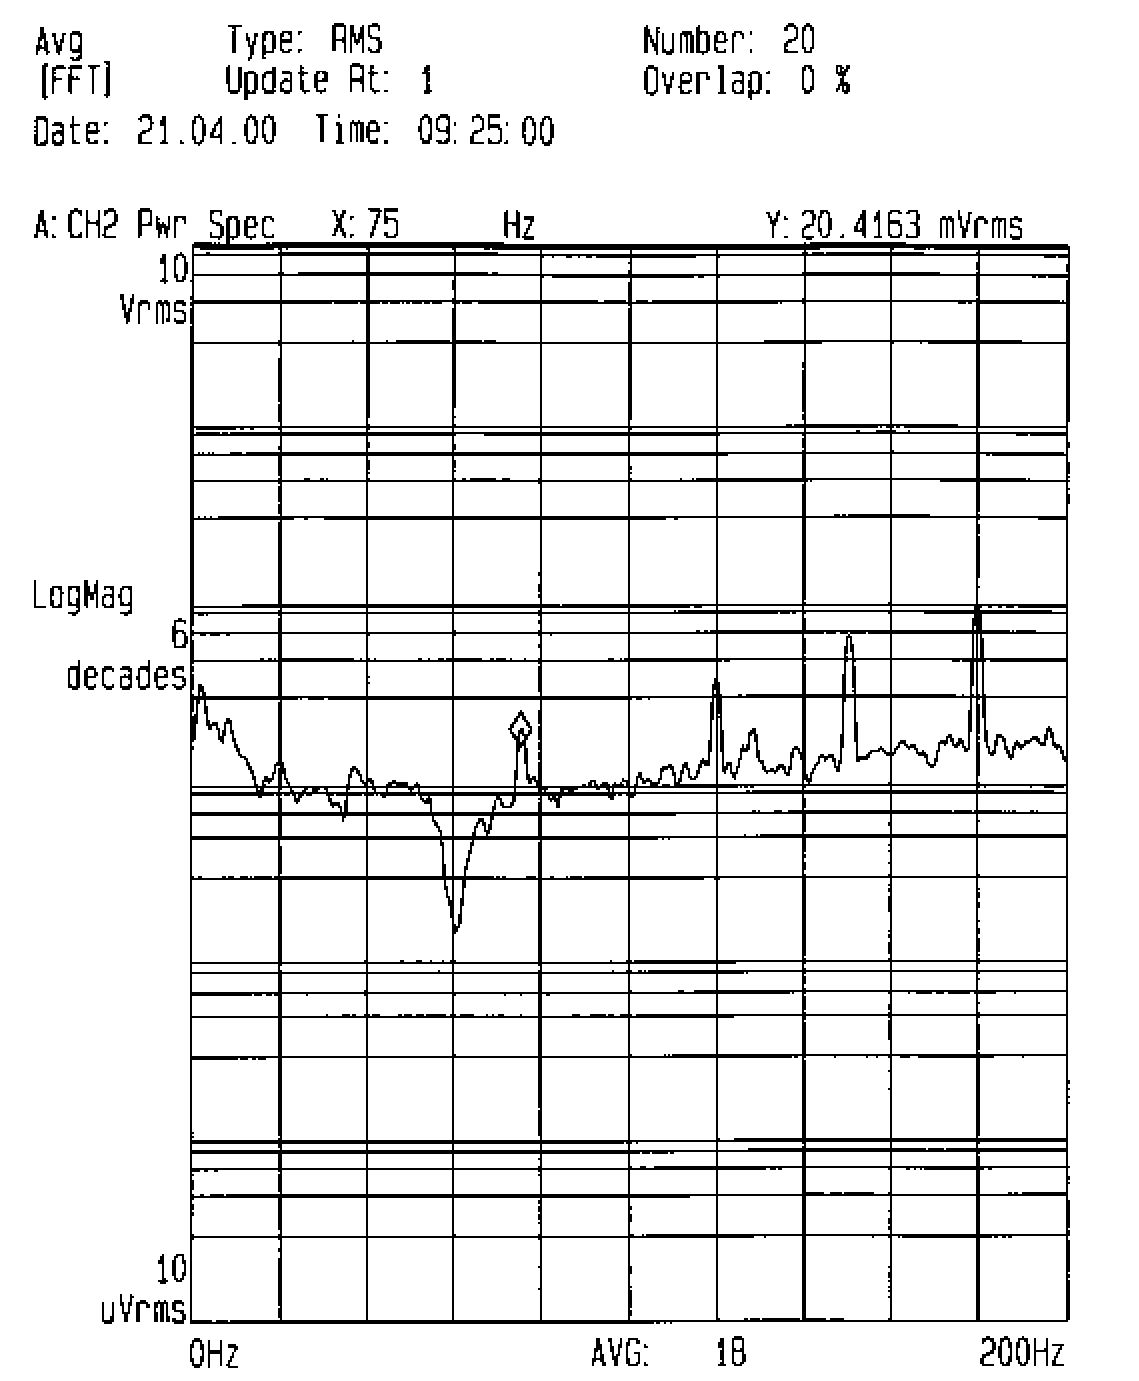 Functional Neurosurgery Using The Radionics Stereoplan System Stereotactic And Functional